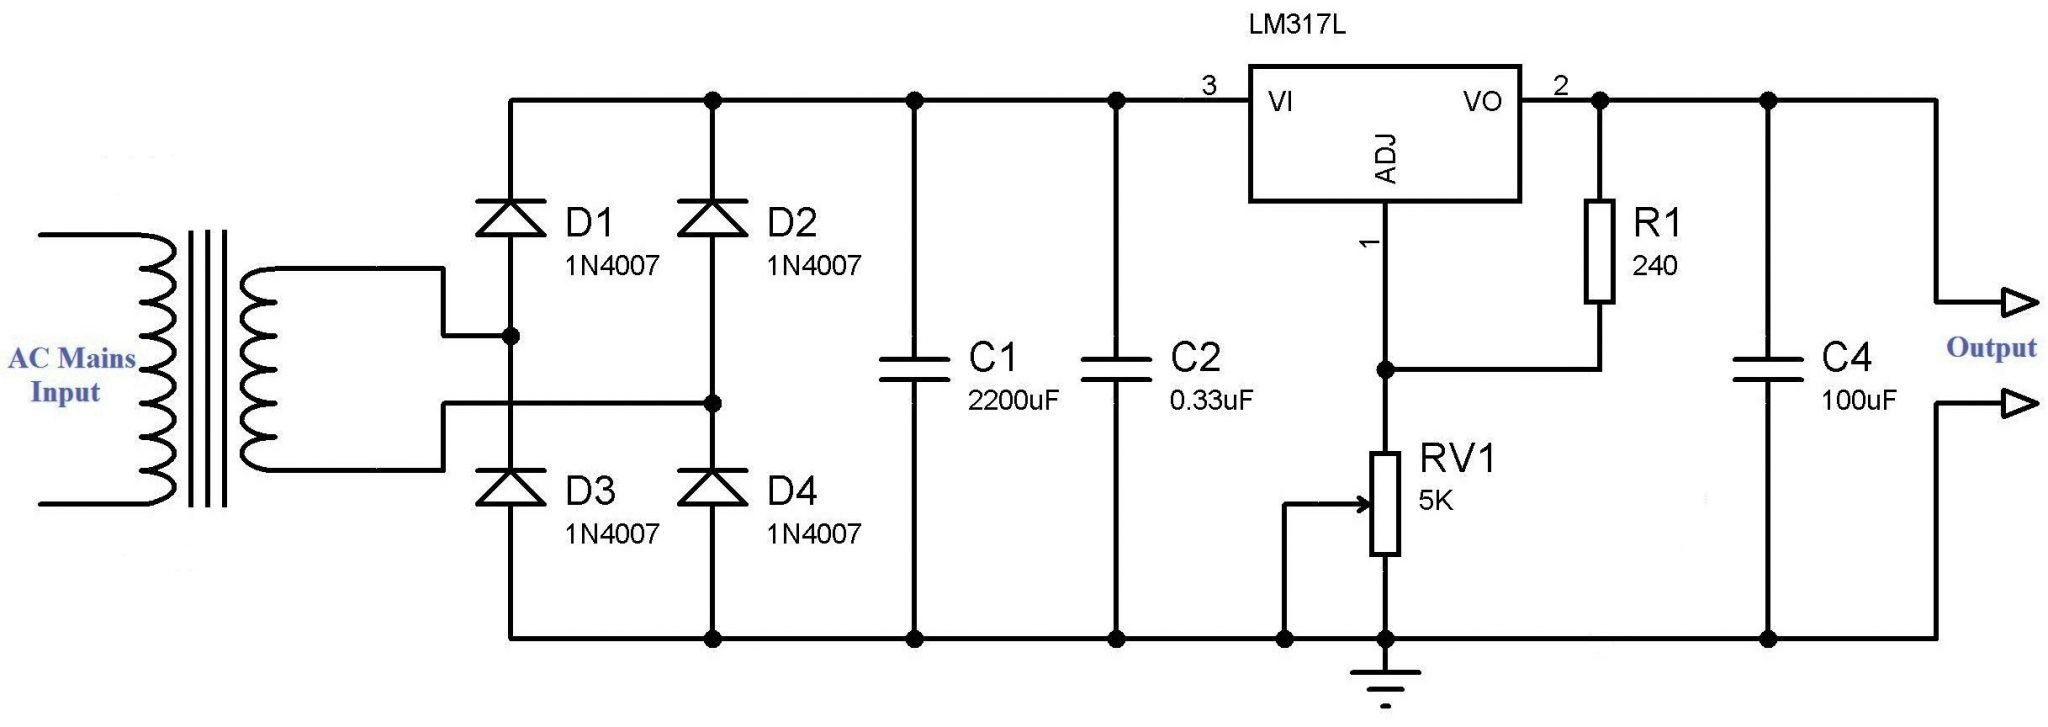 simple power supply diagram variable power supply using lm317 voltage regulator  using lm317 voltage regulator